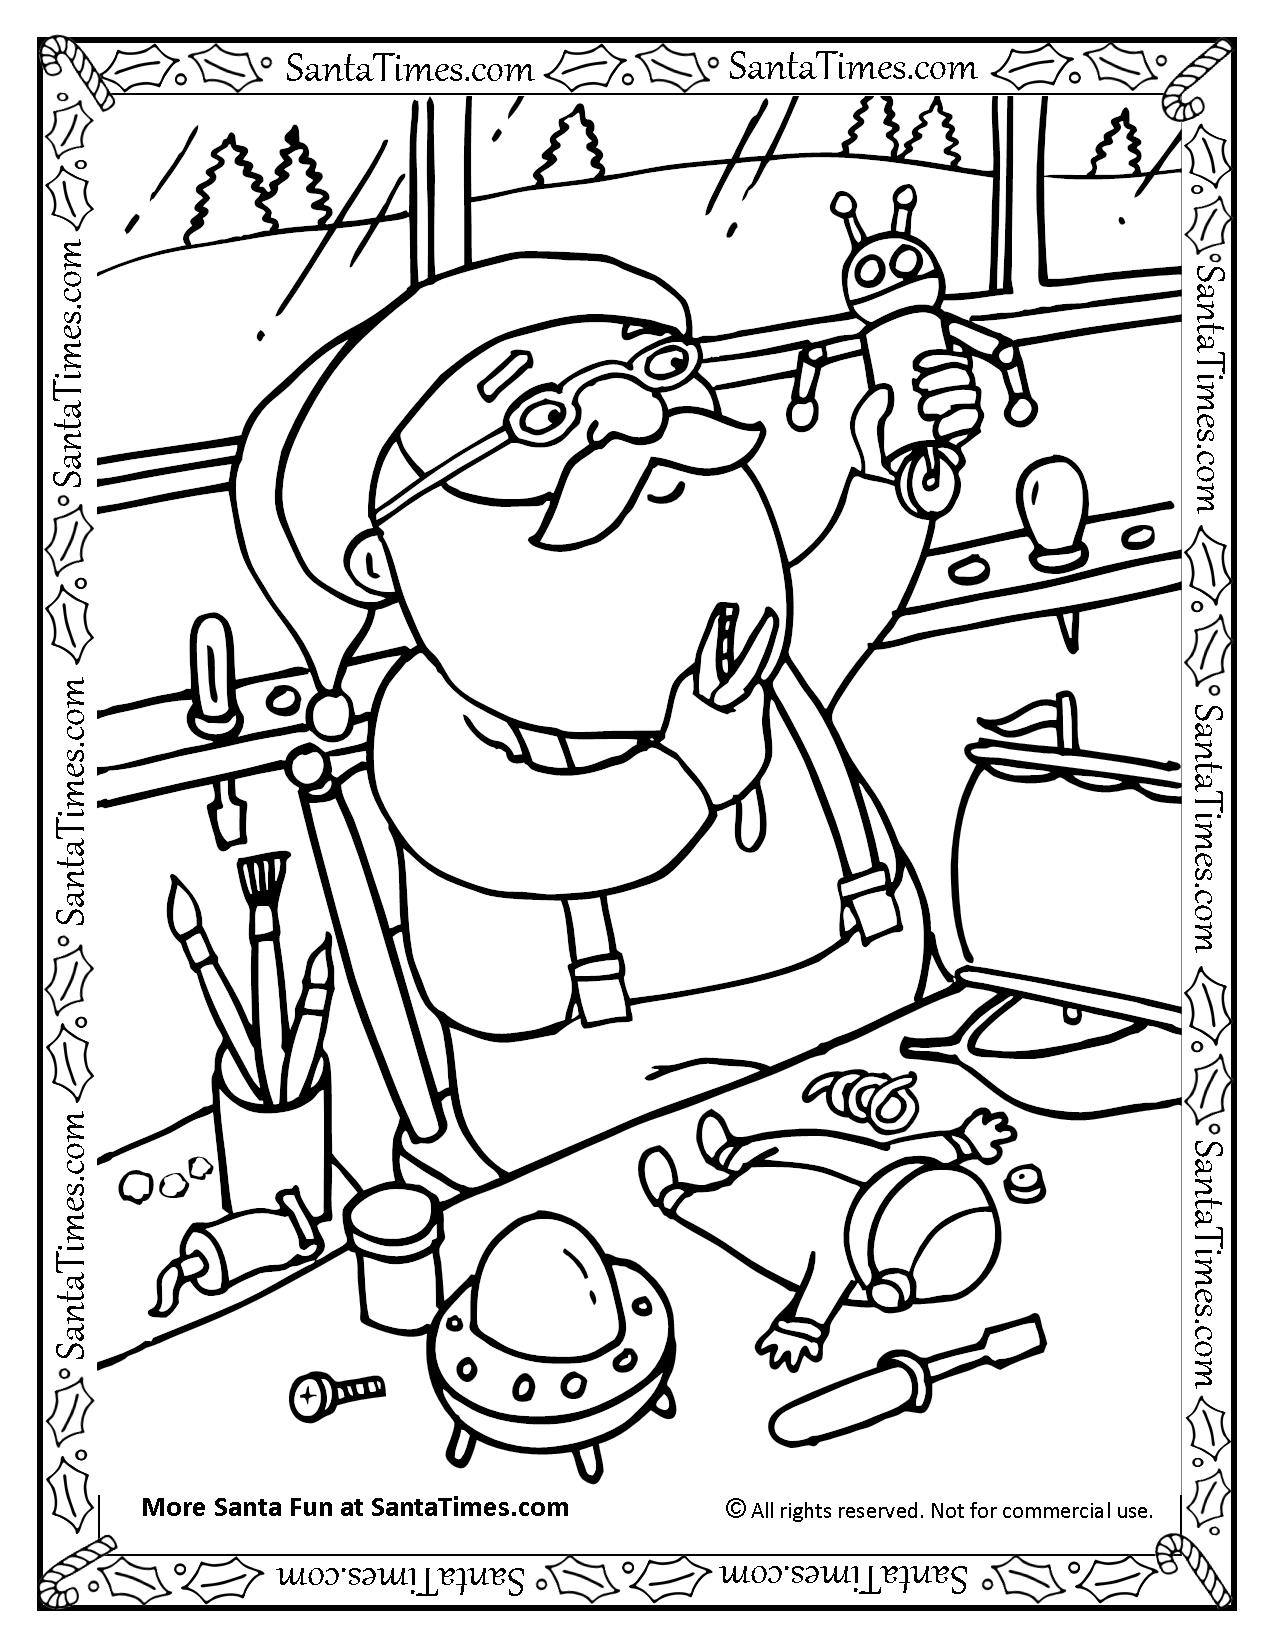 office santas workshop coloring pages - photo #6